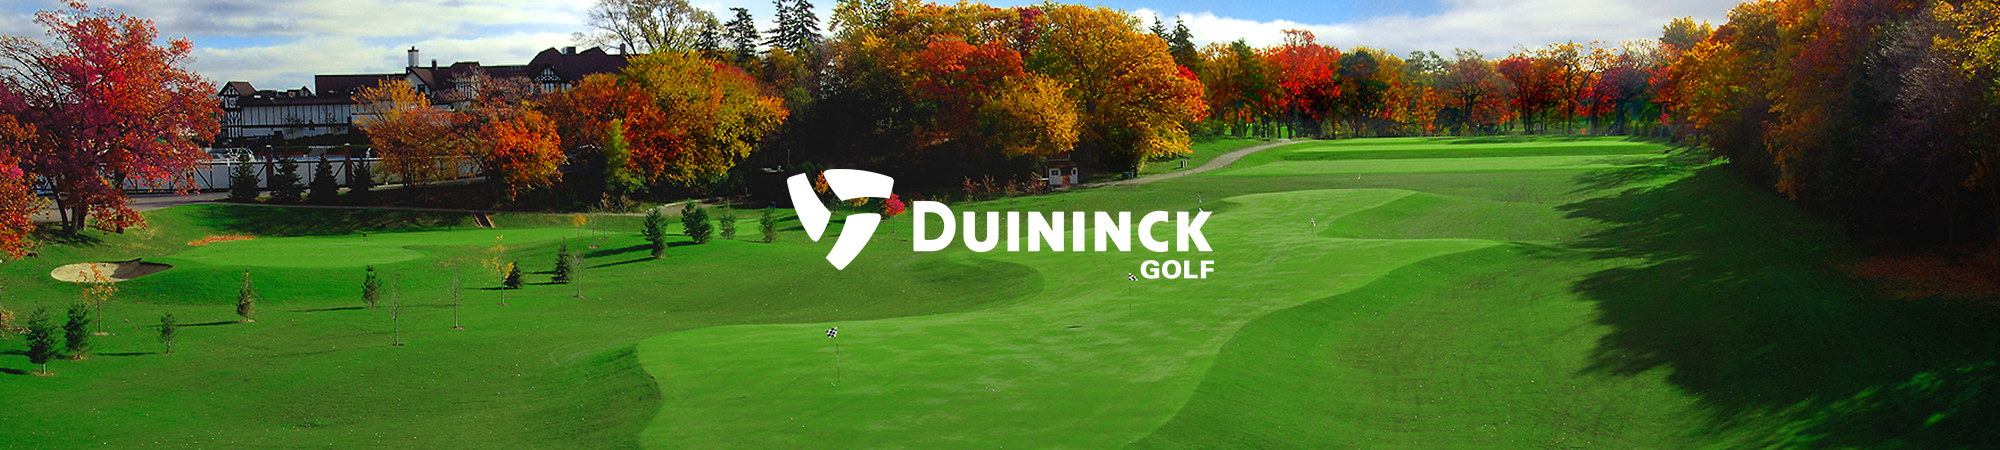 Duininck Golf Logo | Macleod & Co. | Full Service Marketing Agency Minneapolis